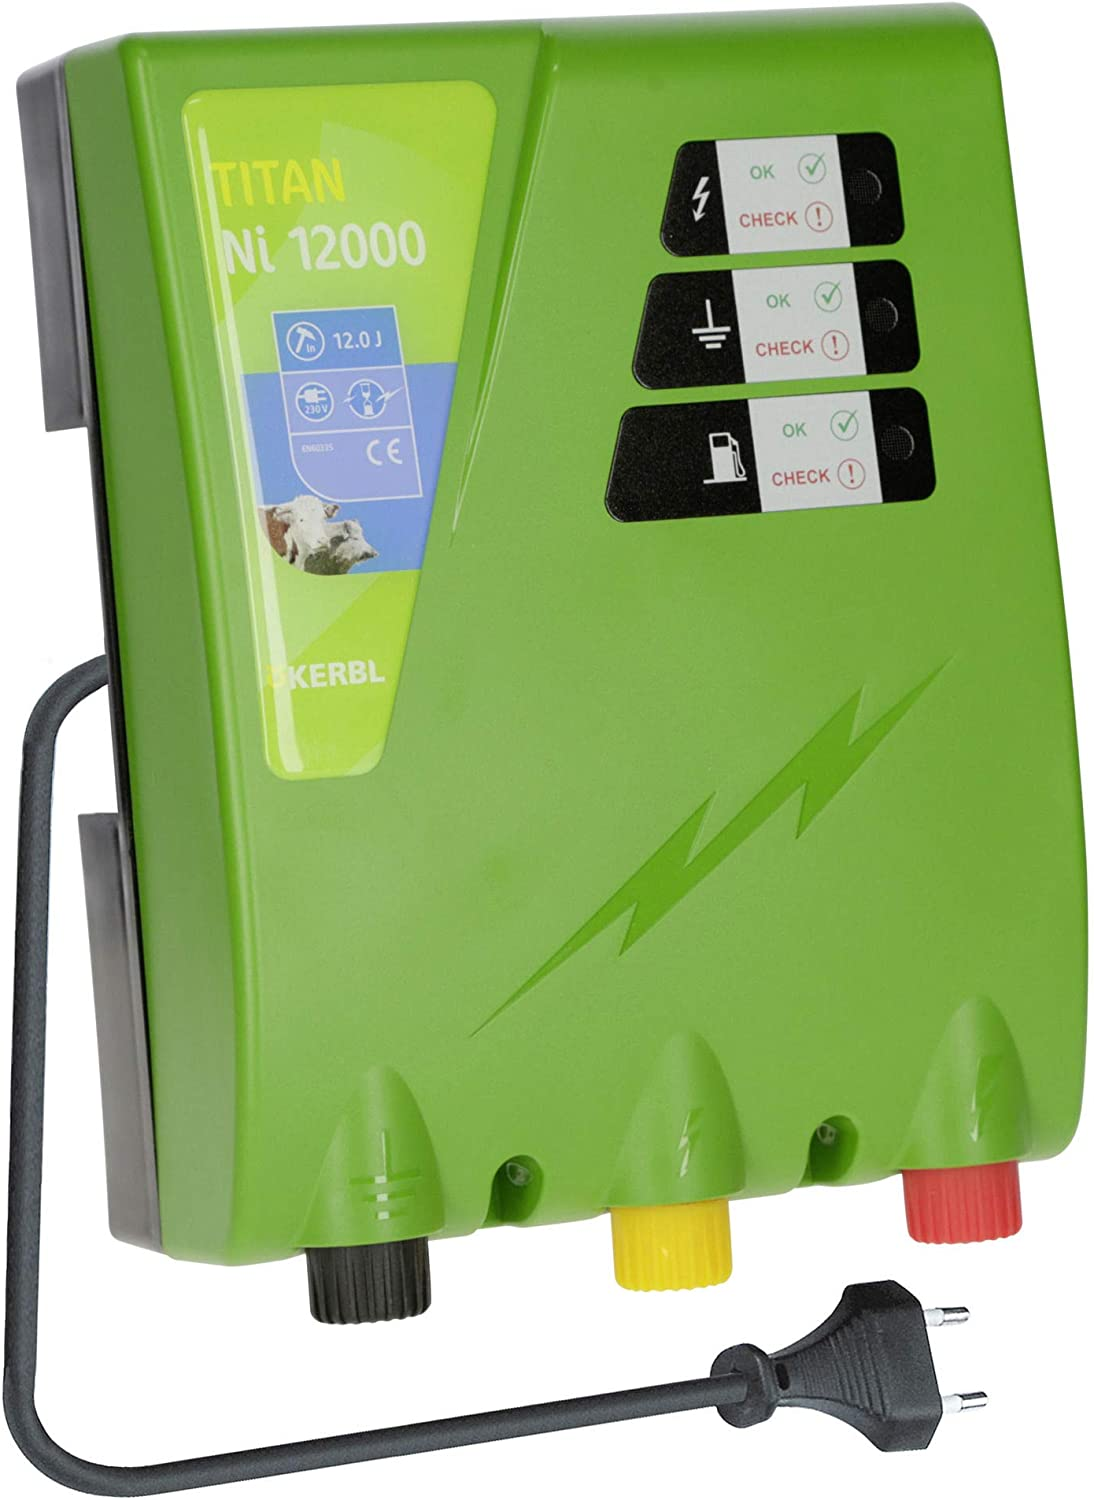 Kerbl NI 12000, 12.0 J Electric Fence Device Titanium Power Supply 230 V